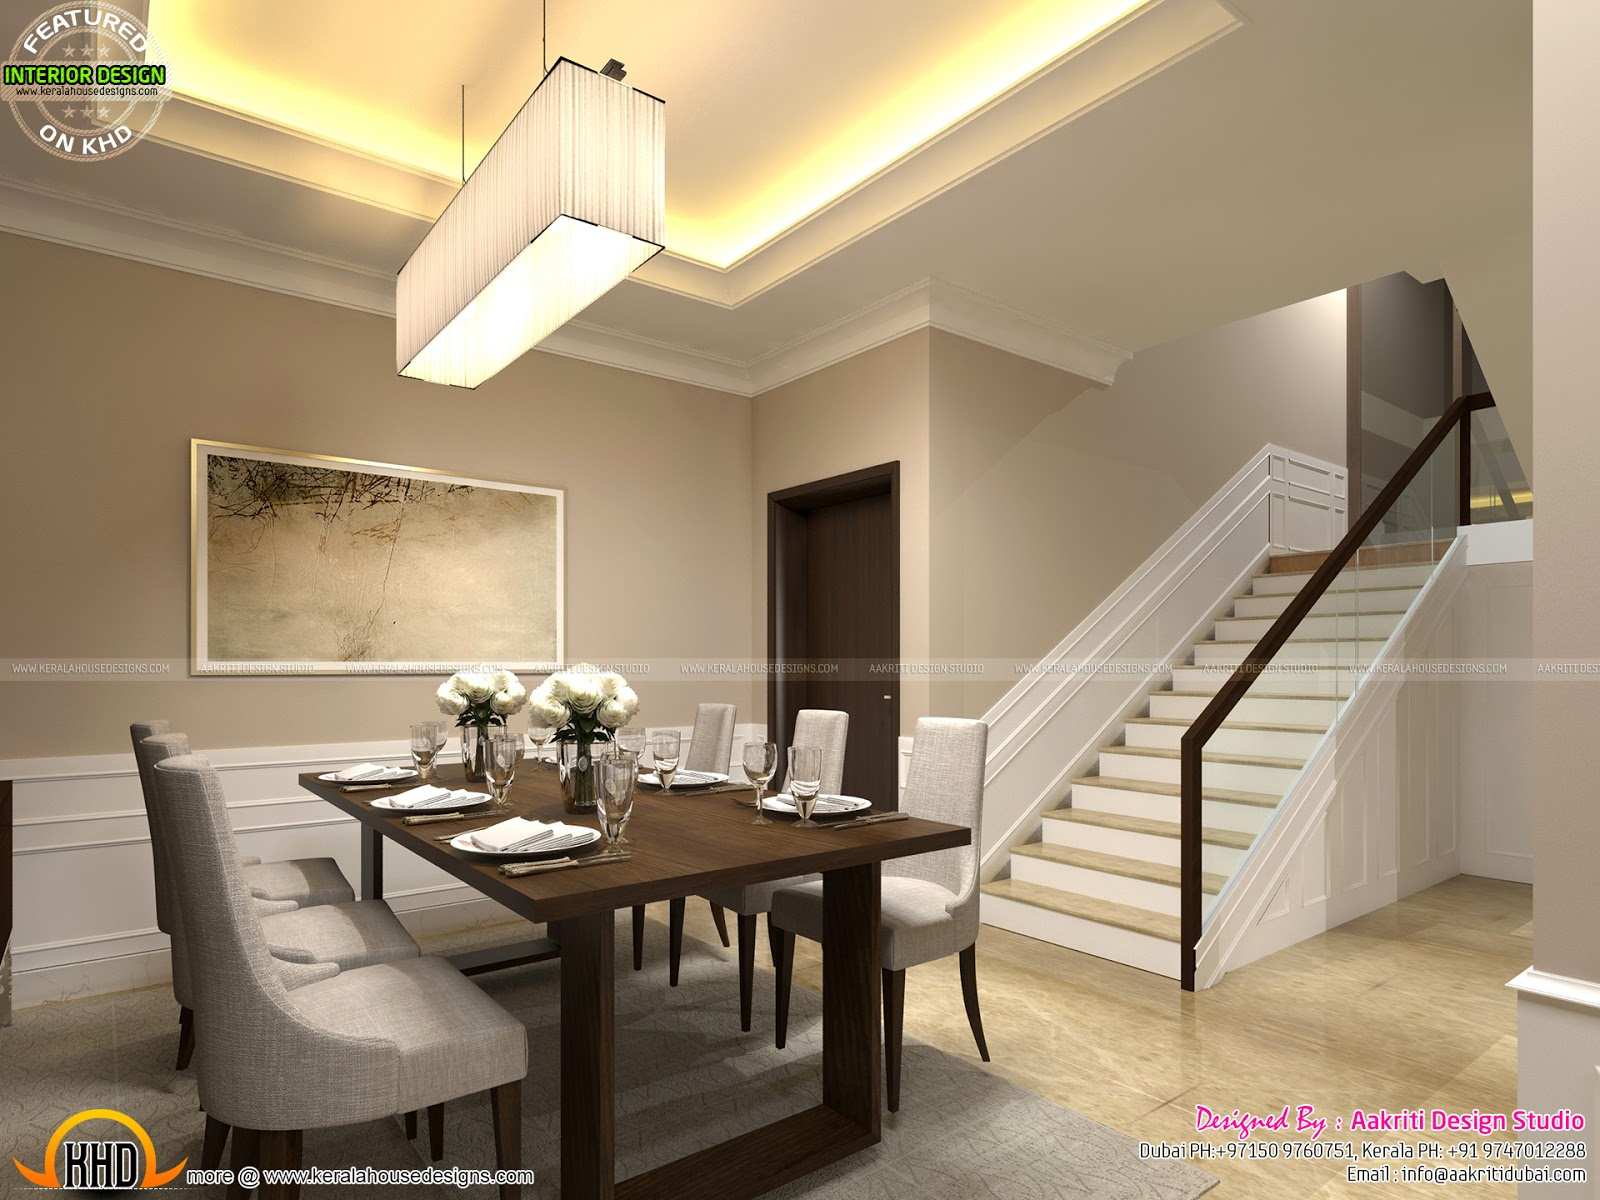 On Style Today 2020 09 05 Captivating Stair Living Room Dining   Ceiling Design For Stairs Area   Wall Light   Reception   Internal Staircase Wall   Interior   Show Room